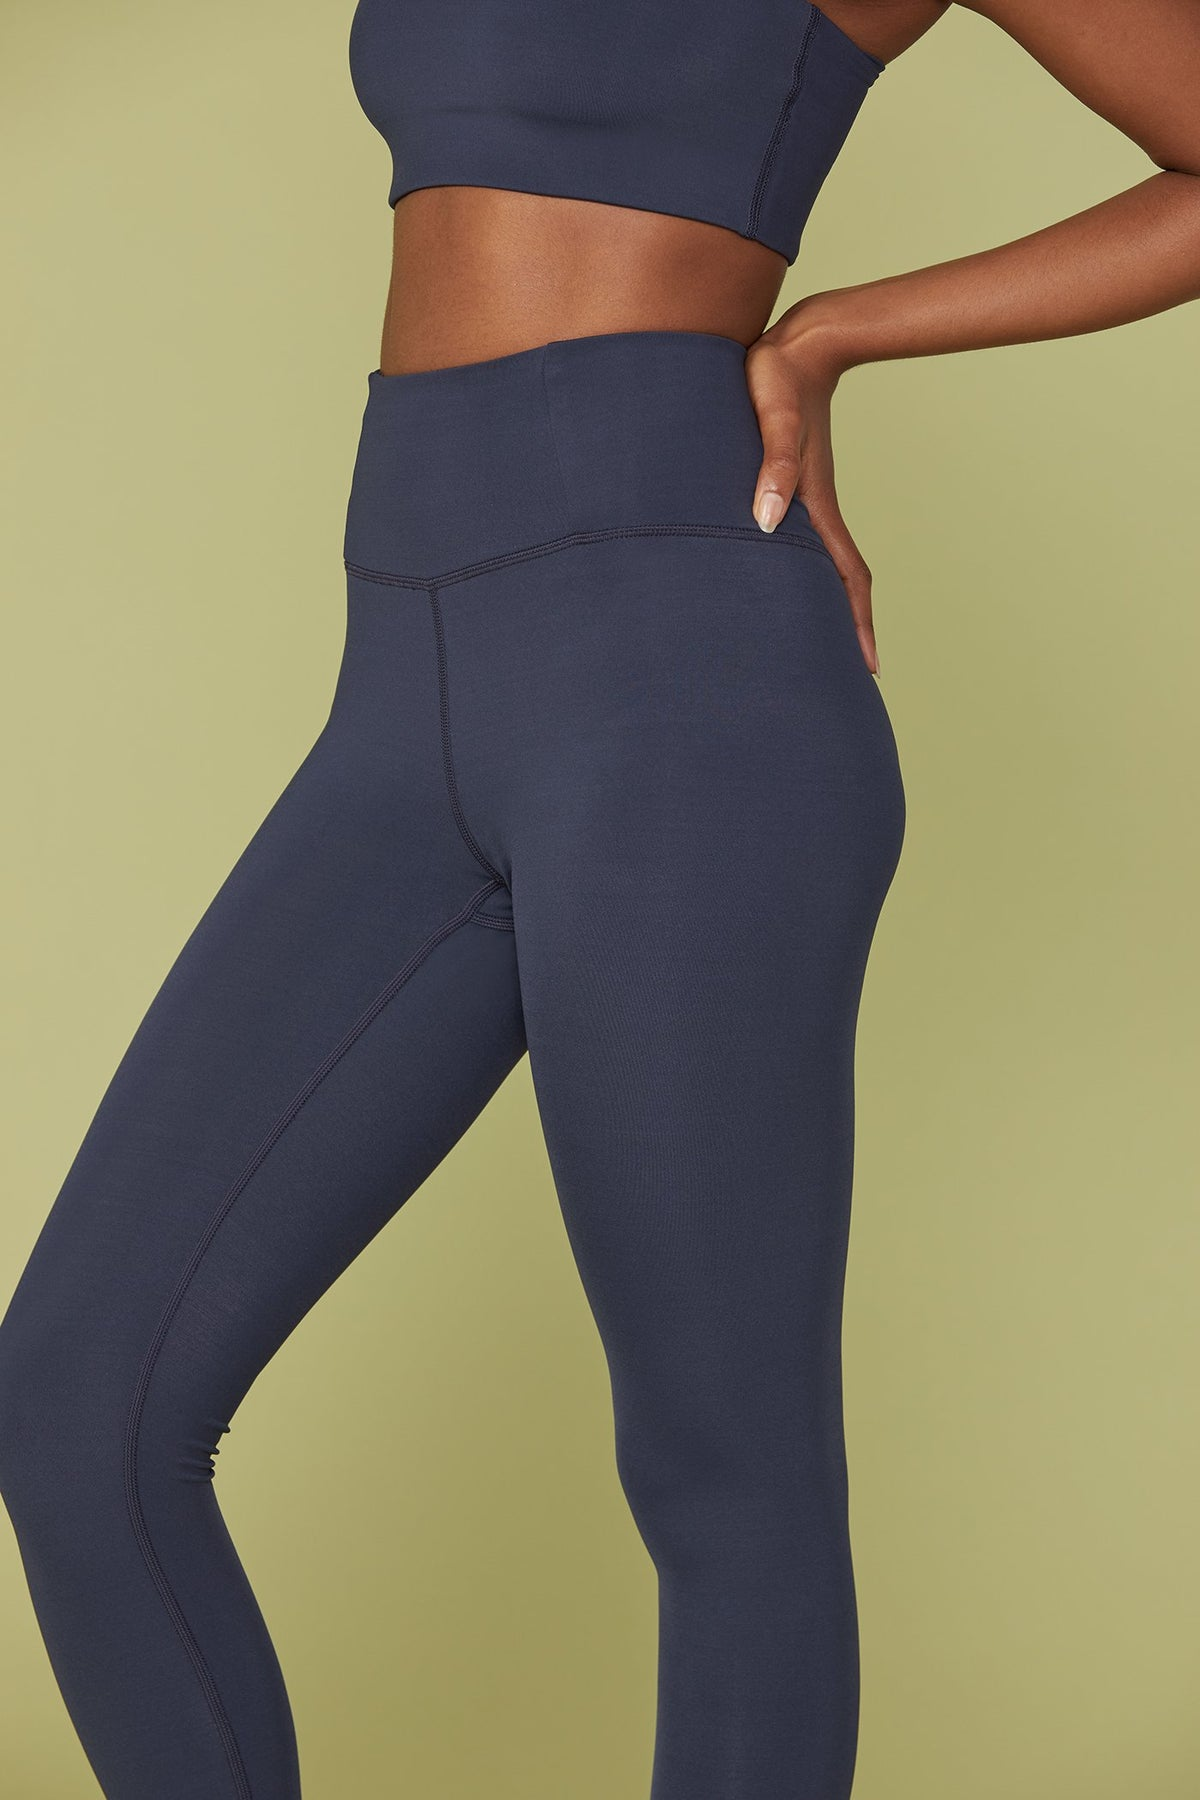 Midnight Seamless LITE High-Rise Legging Image